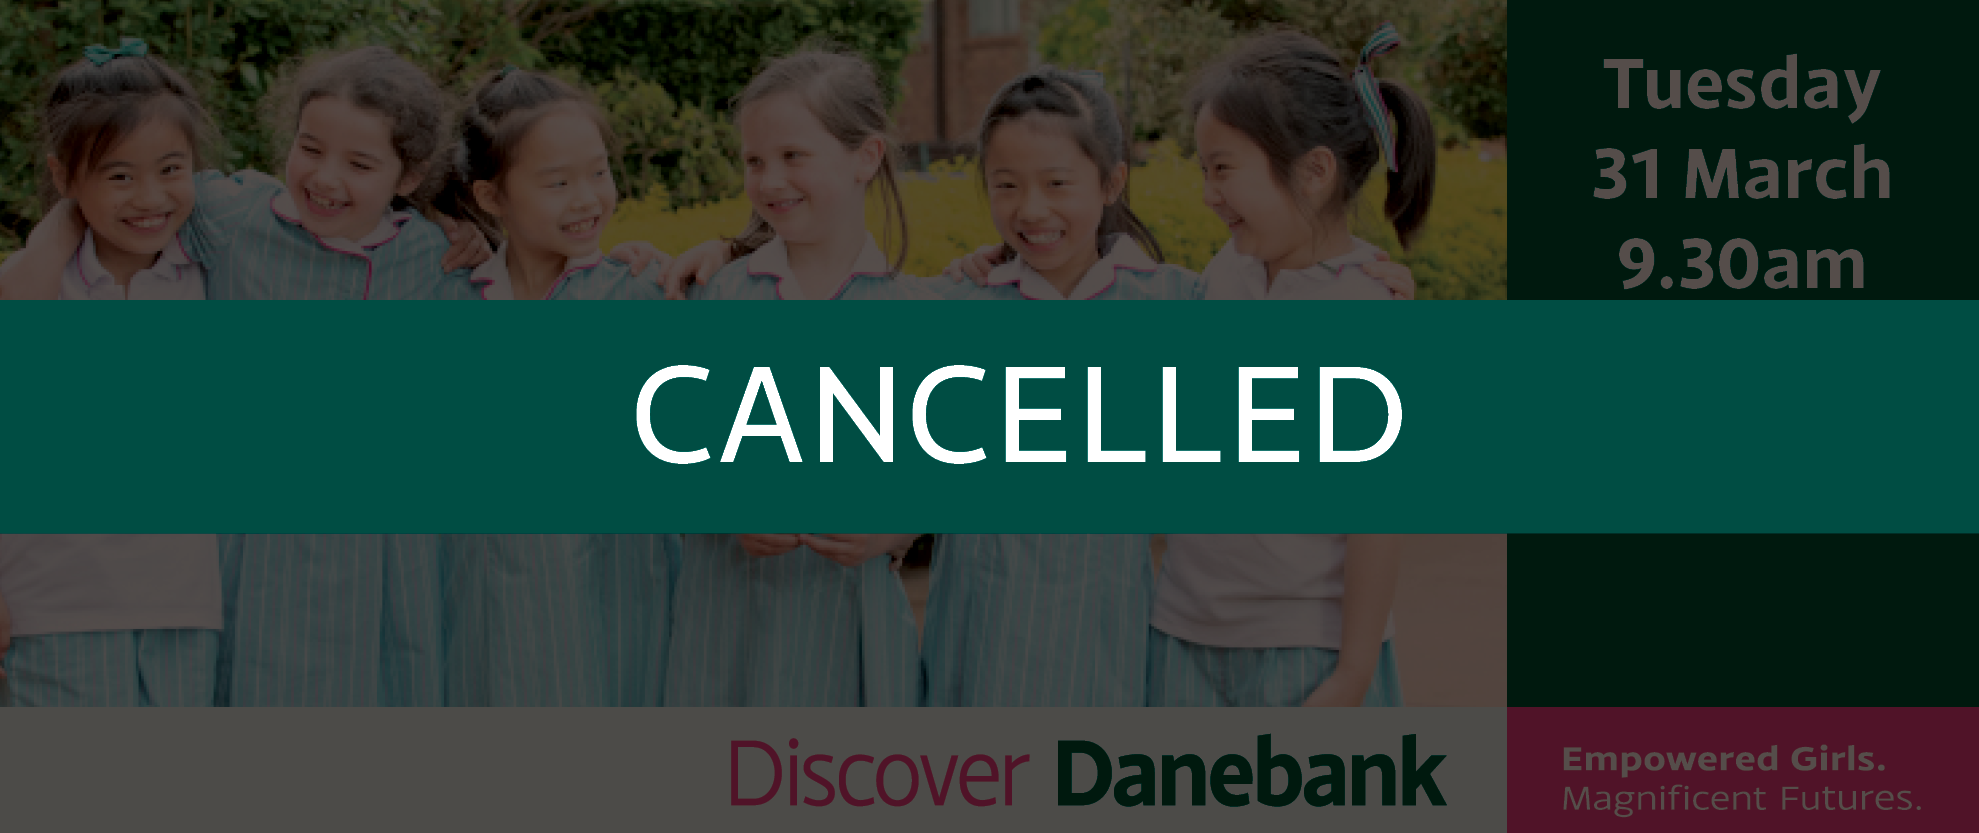 CANCELLED_T1_2020_OpenMorning_Footer